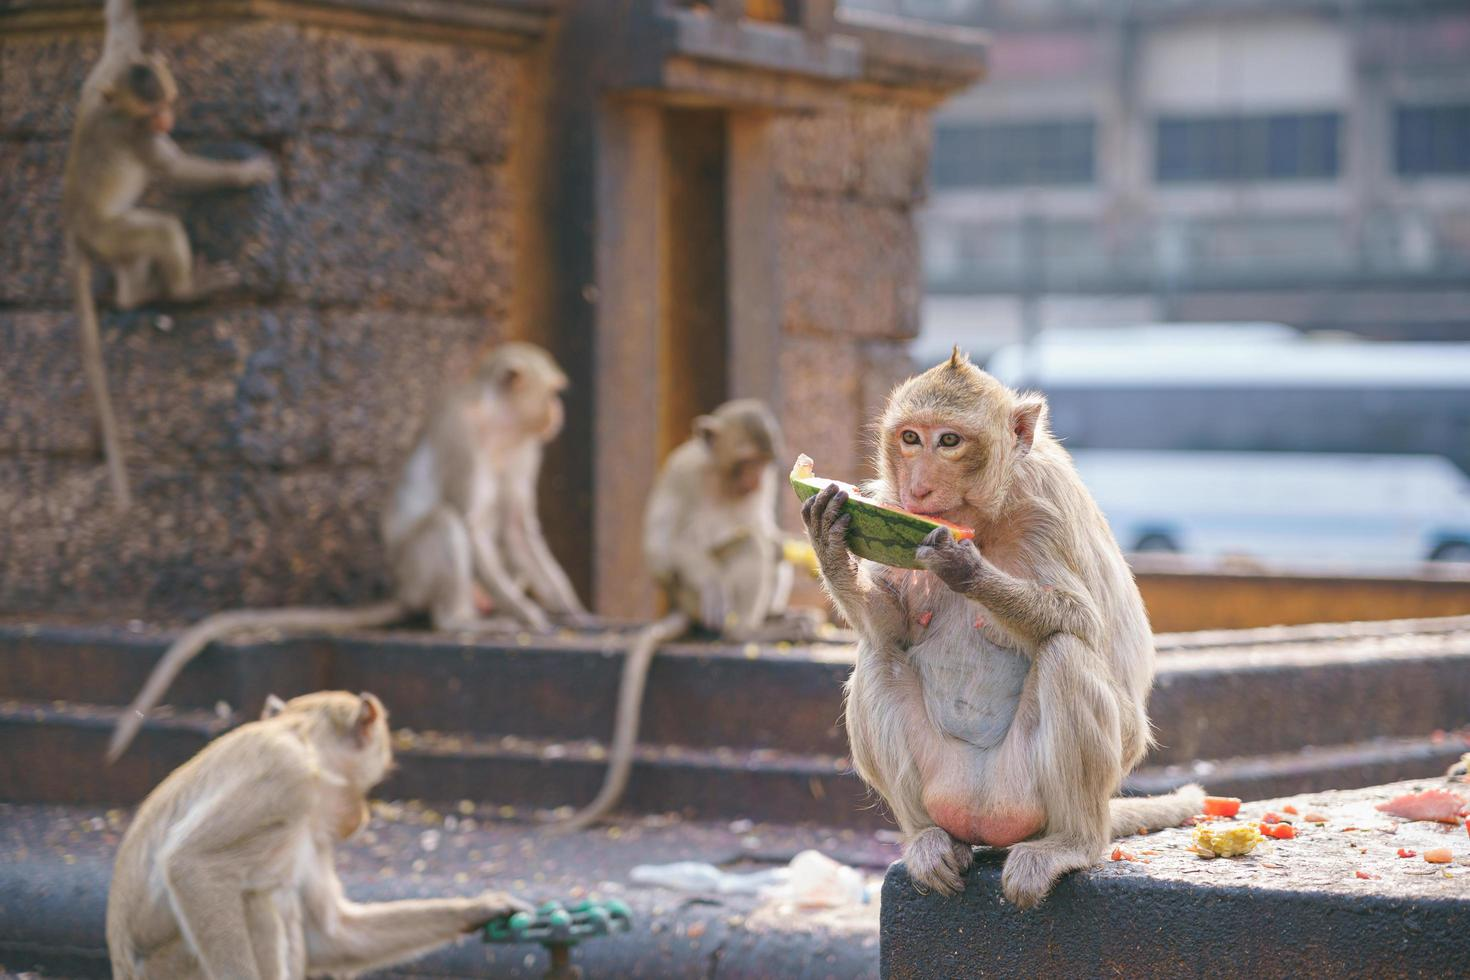 Crab-eating macaque eating fruit in Lop Buri, Thailand photo